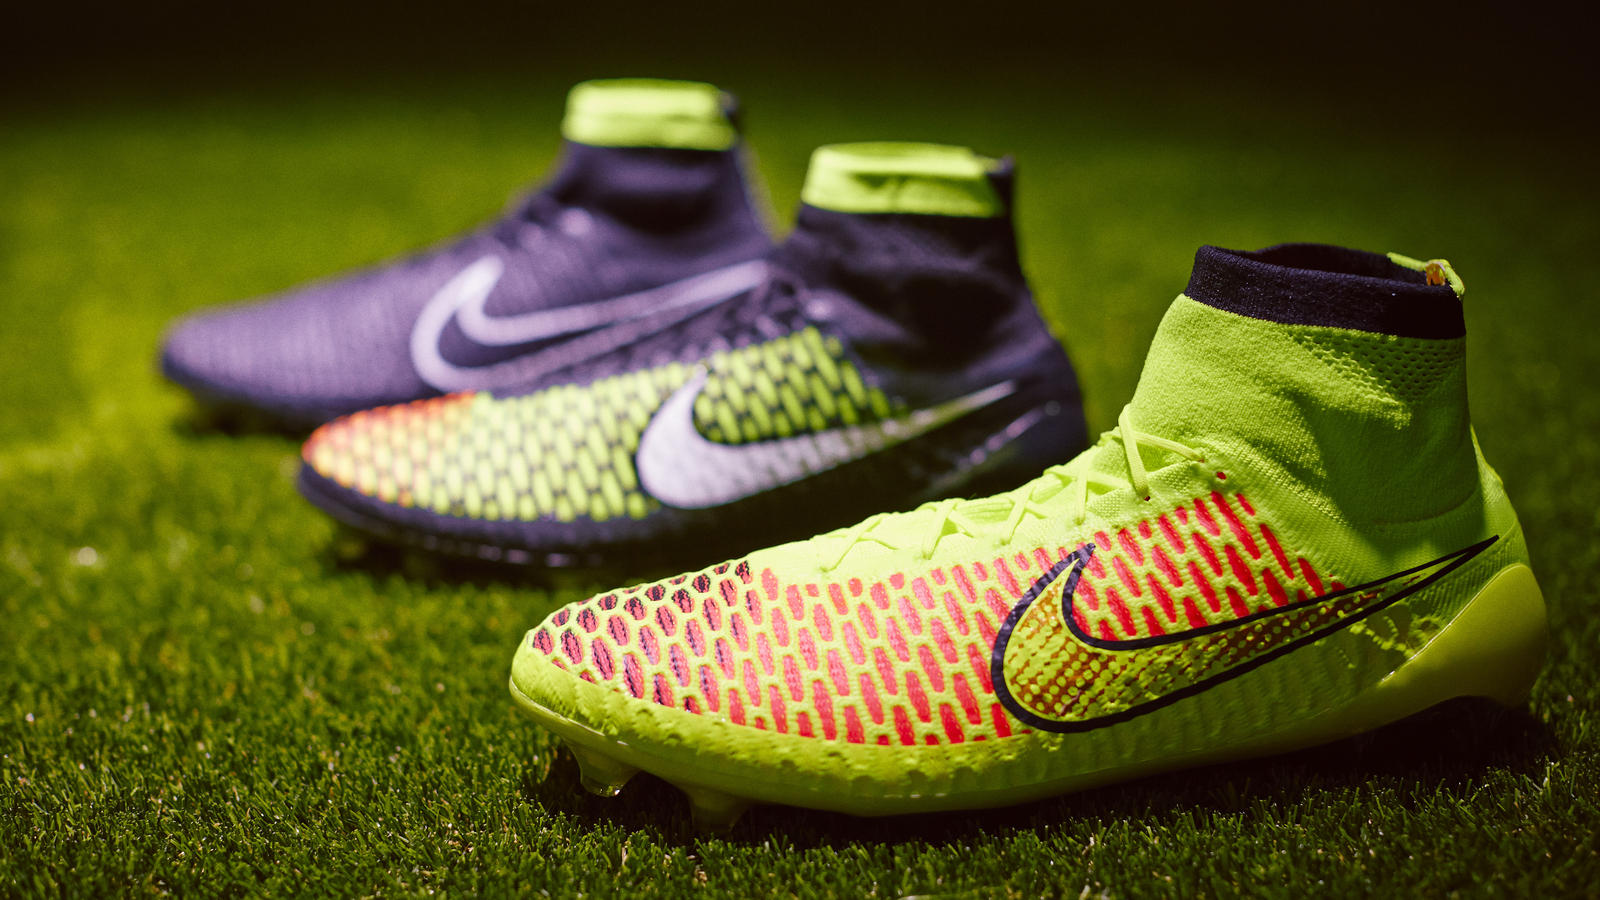 The Magista Volt Hyperpunch